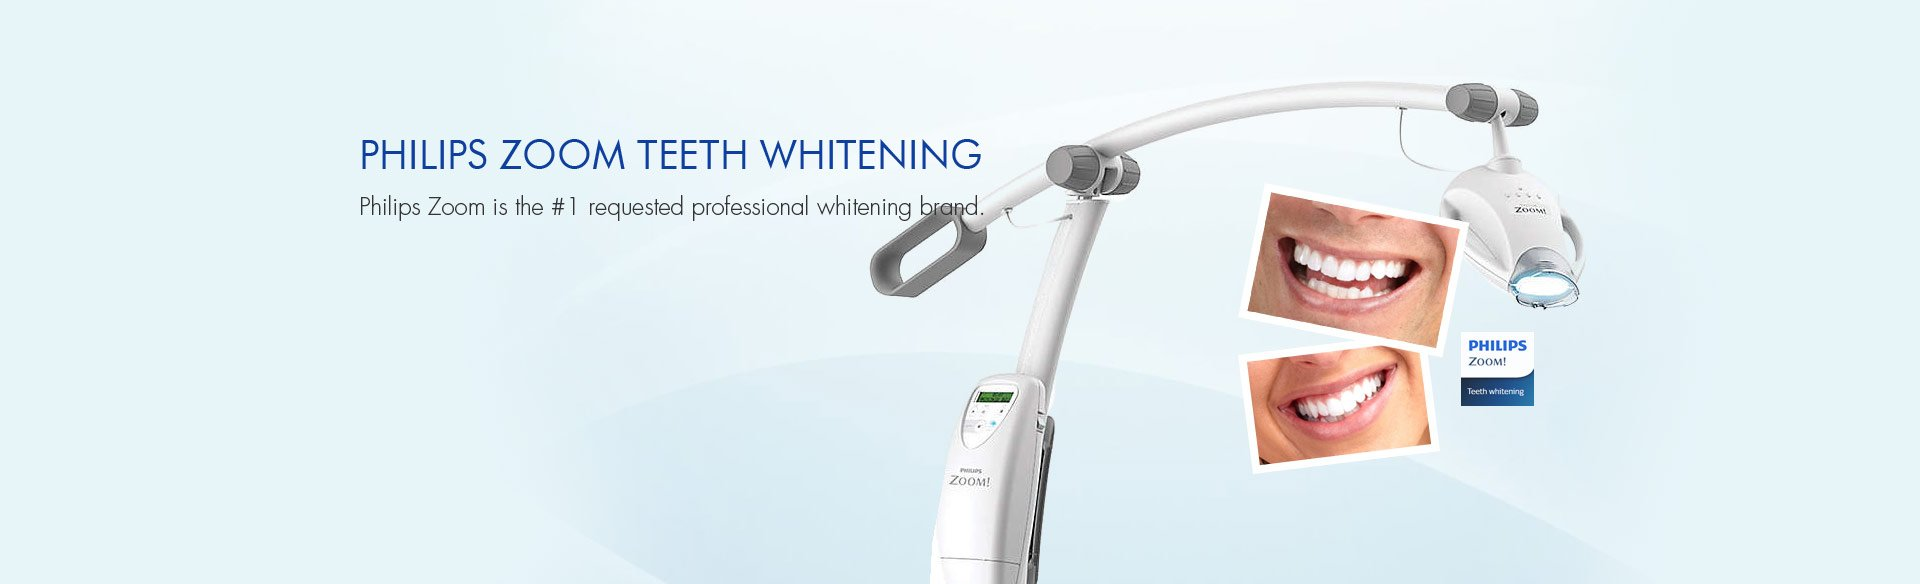 Dr. Carlos Garcia, Bright Smiles Dental Studio Image Of Philips Zoom teeth Whitening